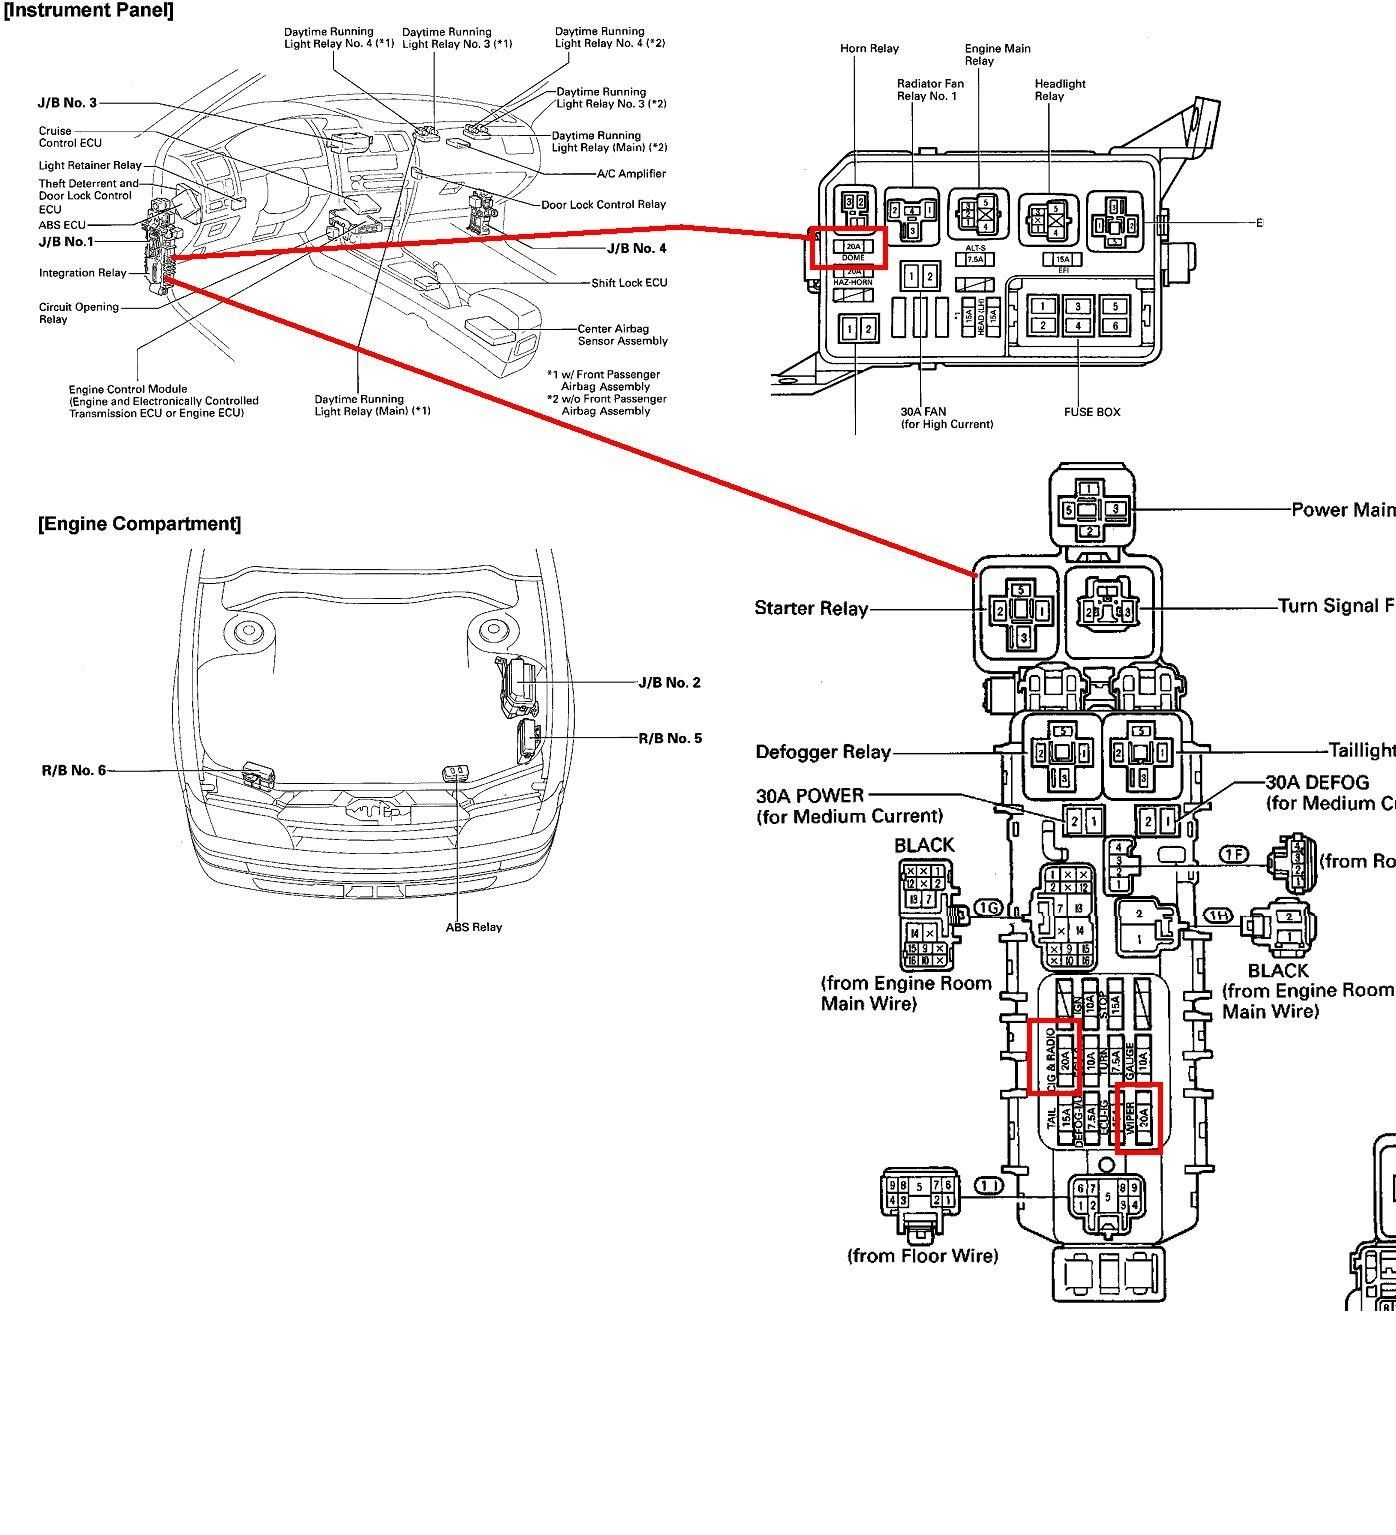 1994 toyota corolla thermostat diagram data wiring diagrams \u2022 for1994 toyota corolla thermostat diagram data wiring diagrams \u2022 for 2009 toyota corolla wiring diagram